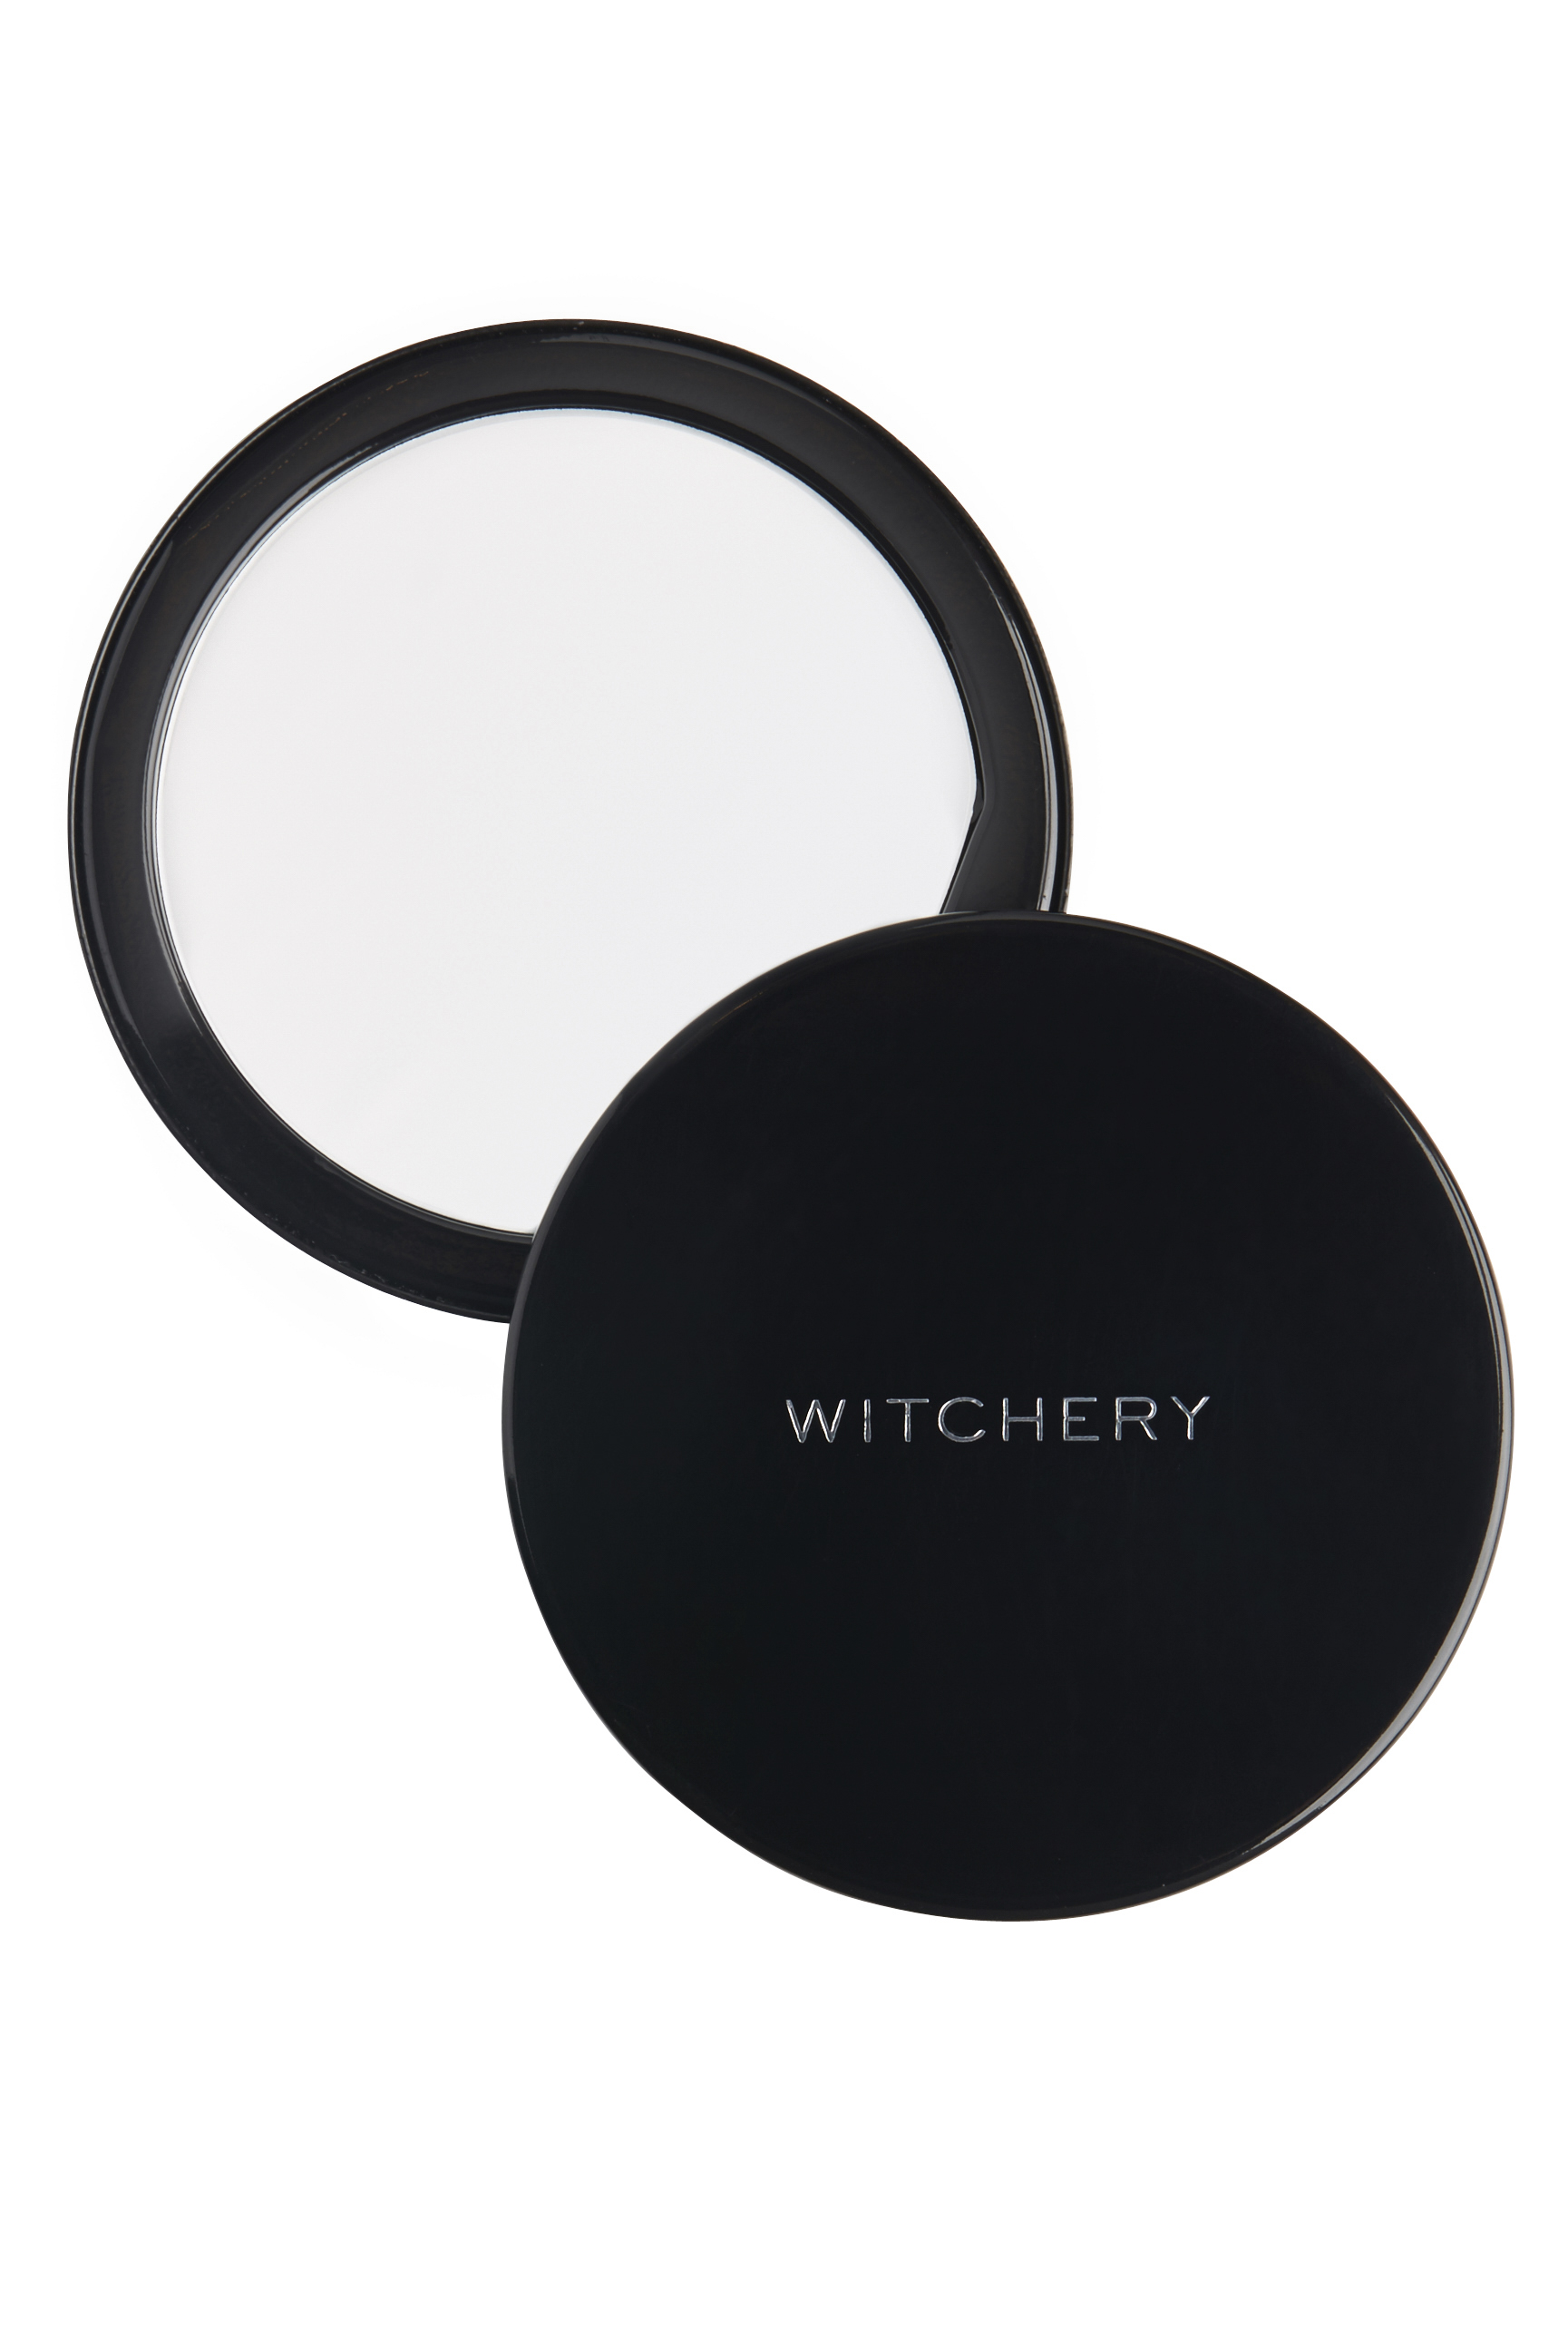 60172158_witcherybeauty-compact-mirror-rrp21-90